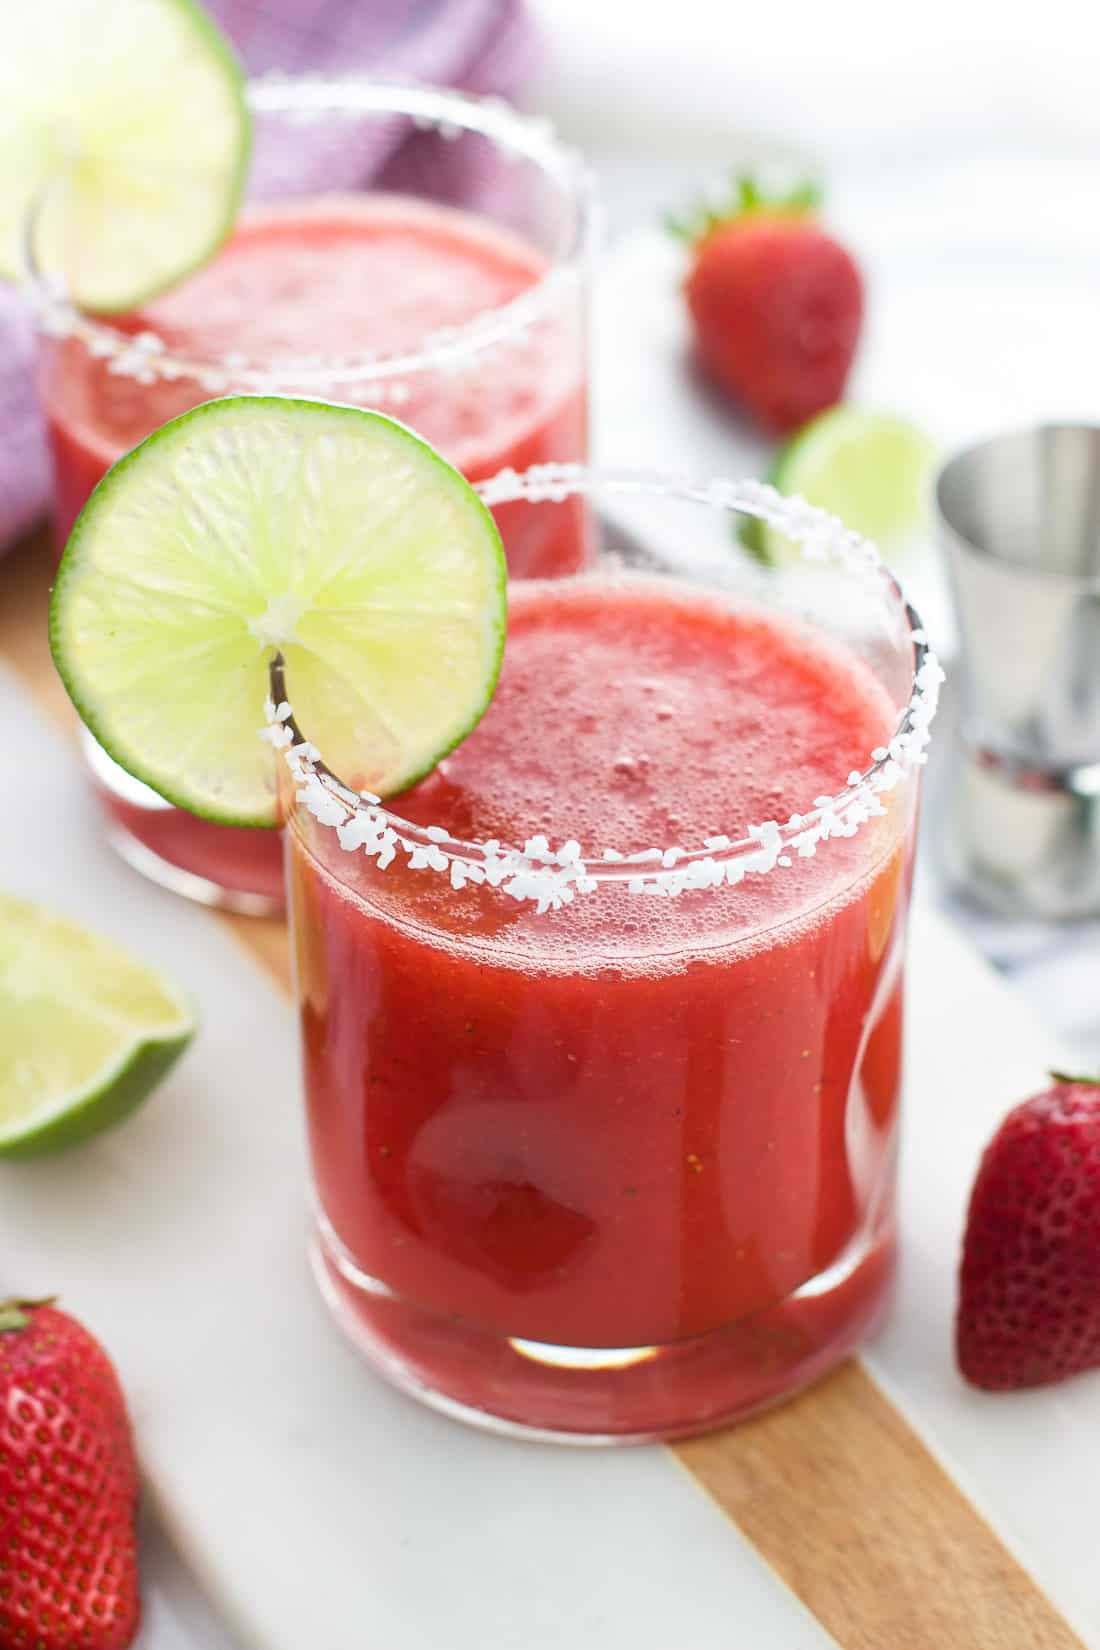 A strawberry ginger margarita in a glass with a salted rim and a lime round as garnish